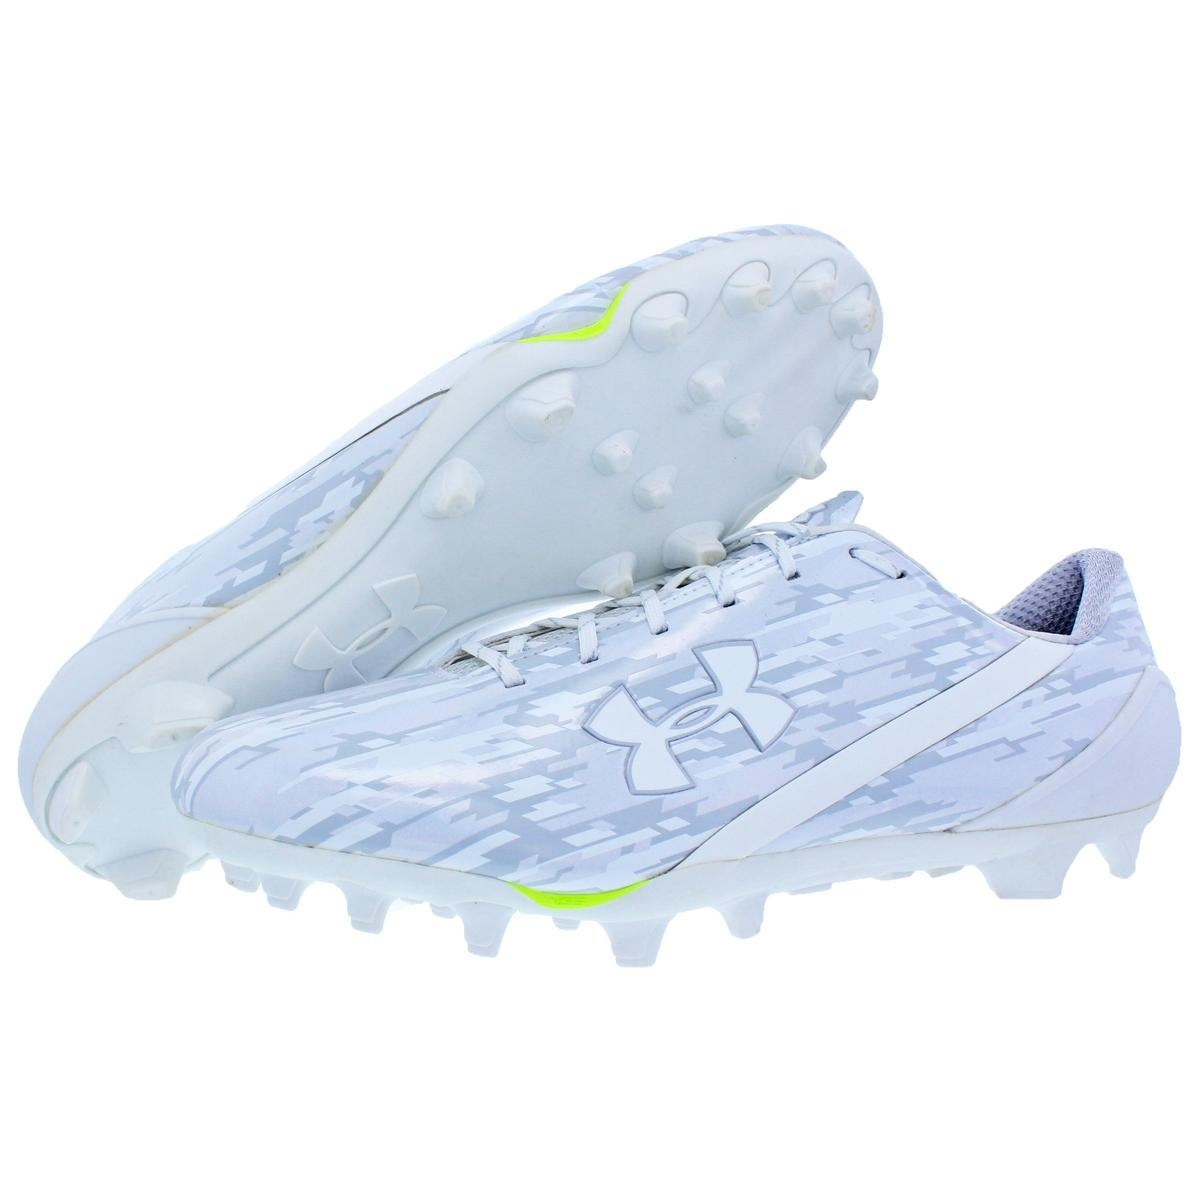 b58c0e5b4158 Shop Under Armour Mens Spotlight LE Cleats Football SpeedForm - Free  Shipping On Orders Over $45 - Overstock - 22320550